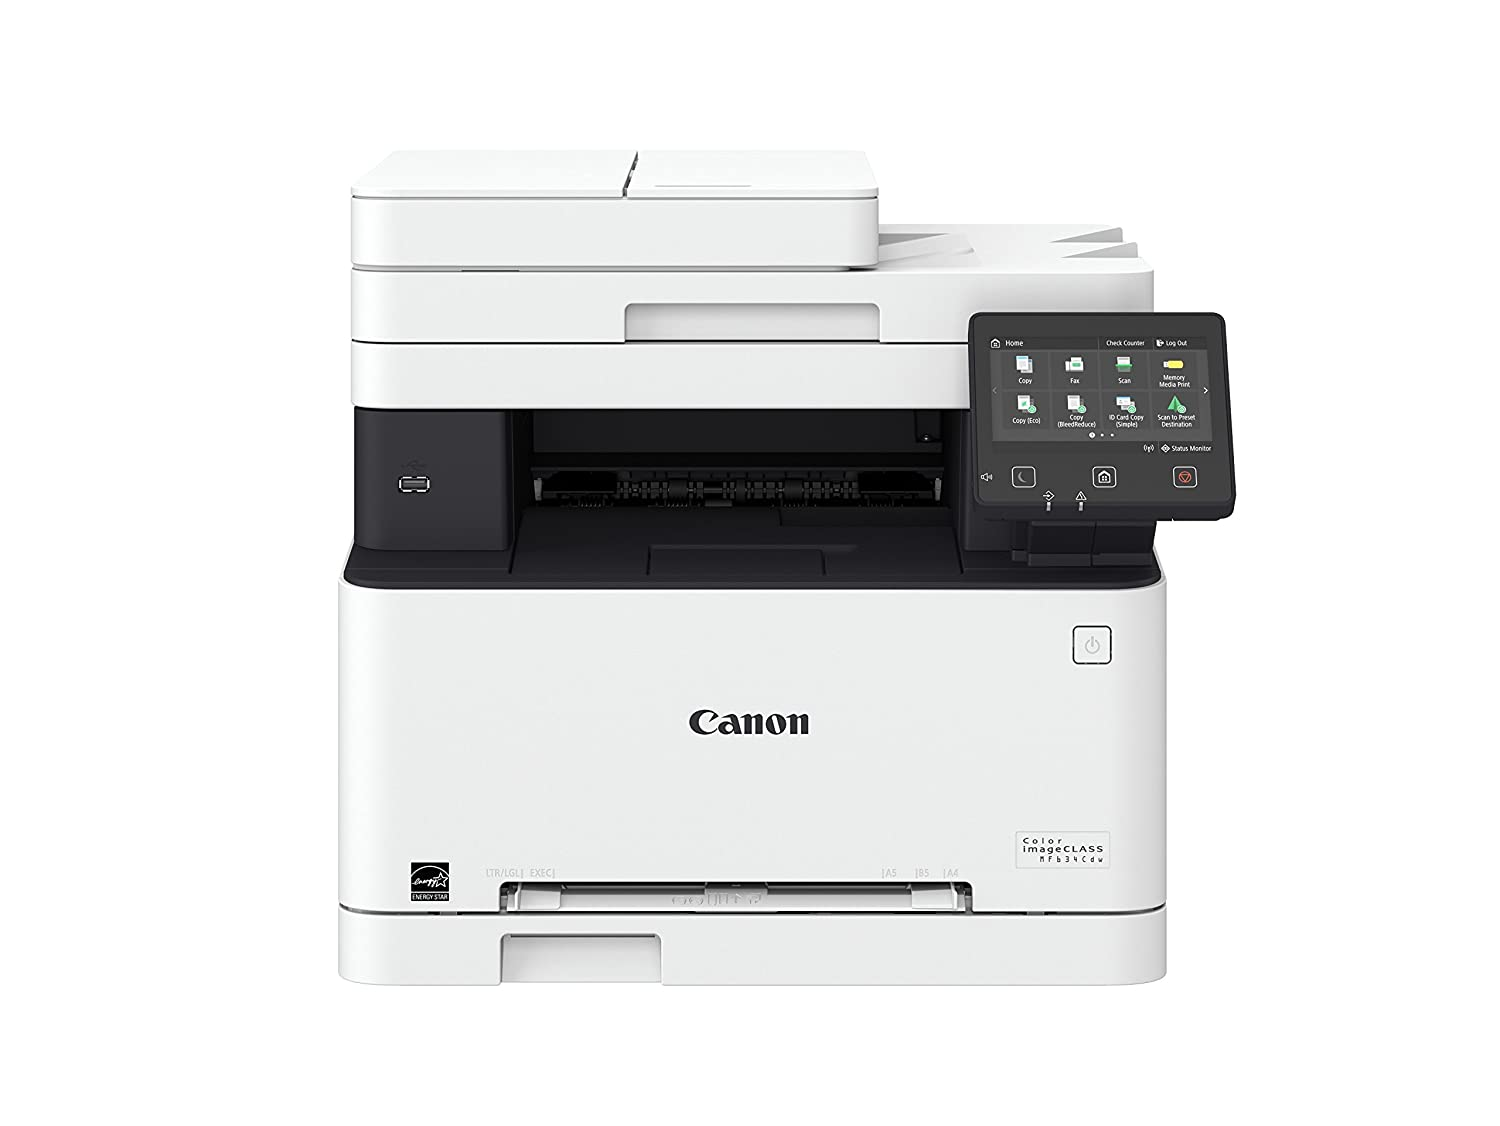 Canon Color imageCLASS MF63 Printer Black Friday Deal 2020